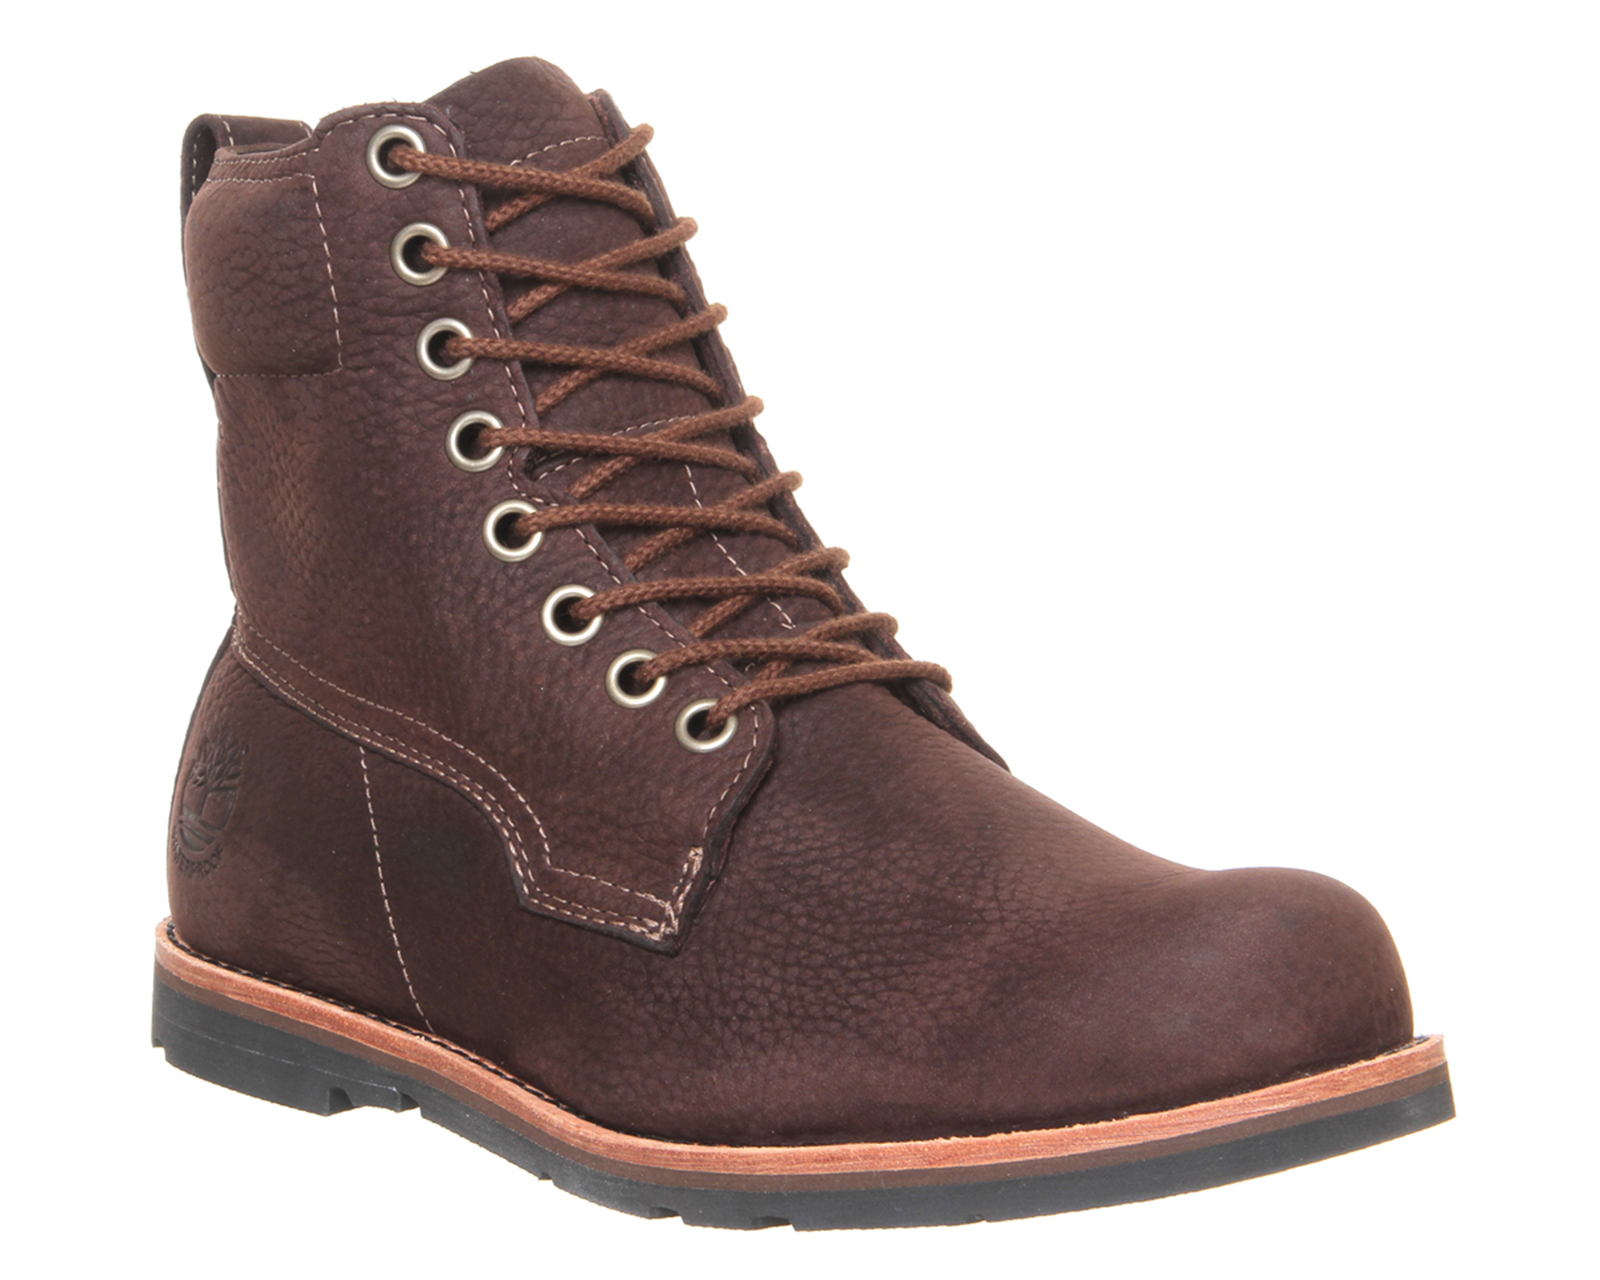 timberland rugged lt 6 inch boots in brown for save